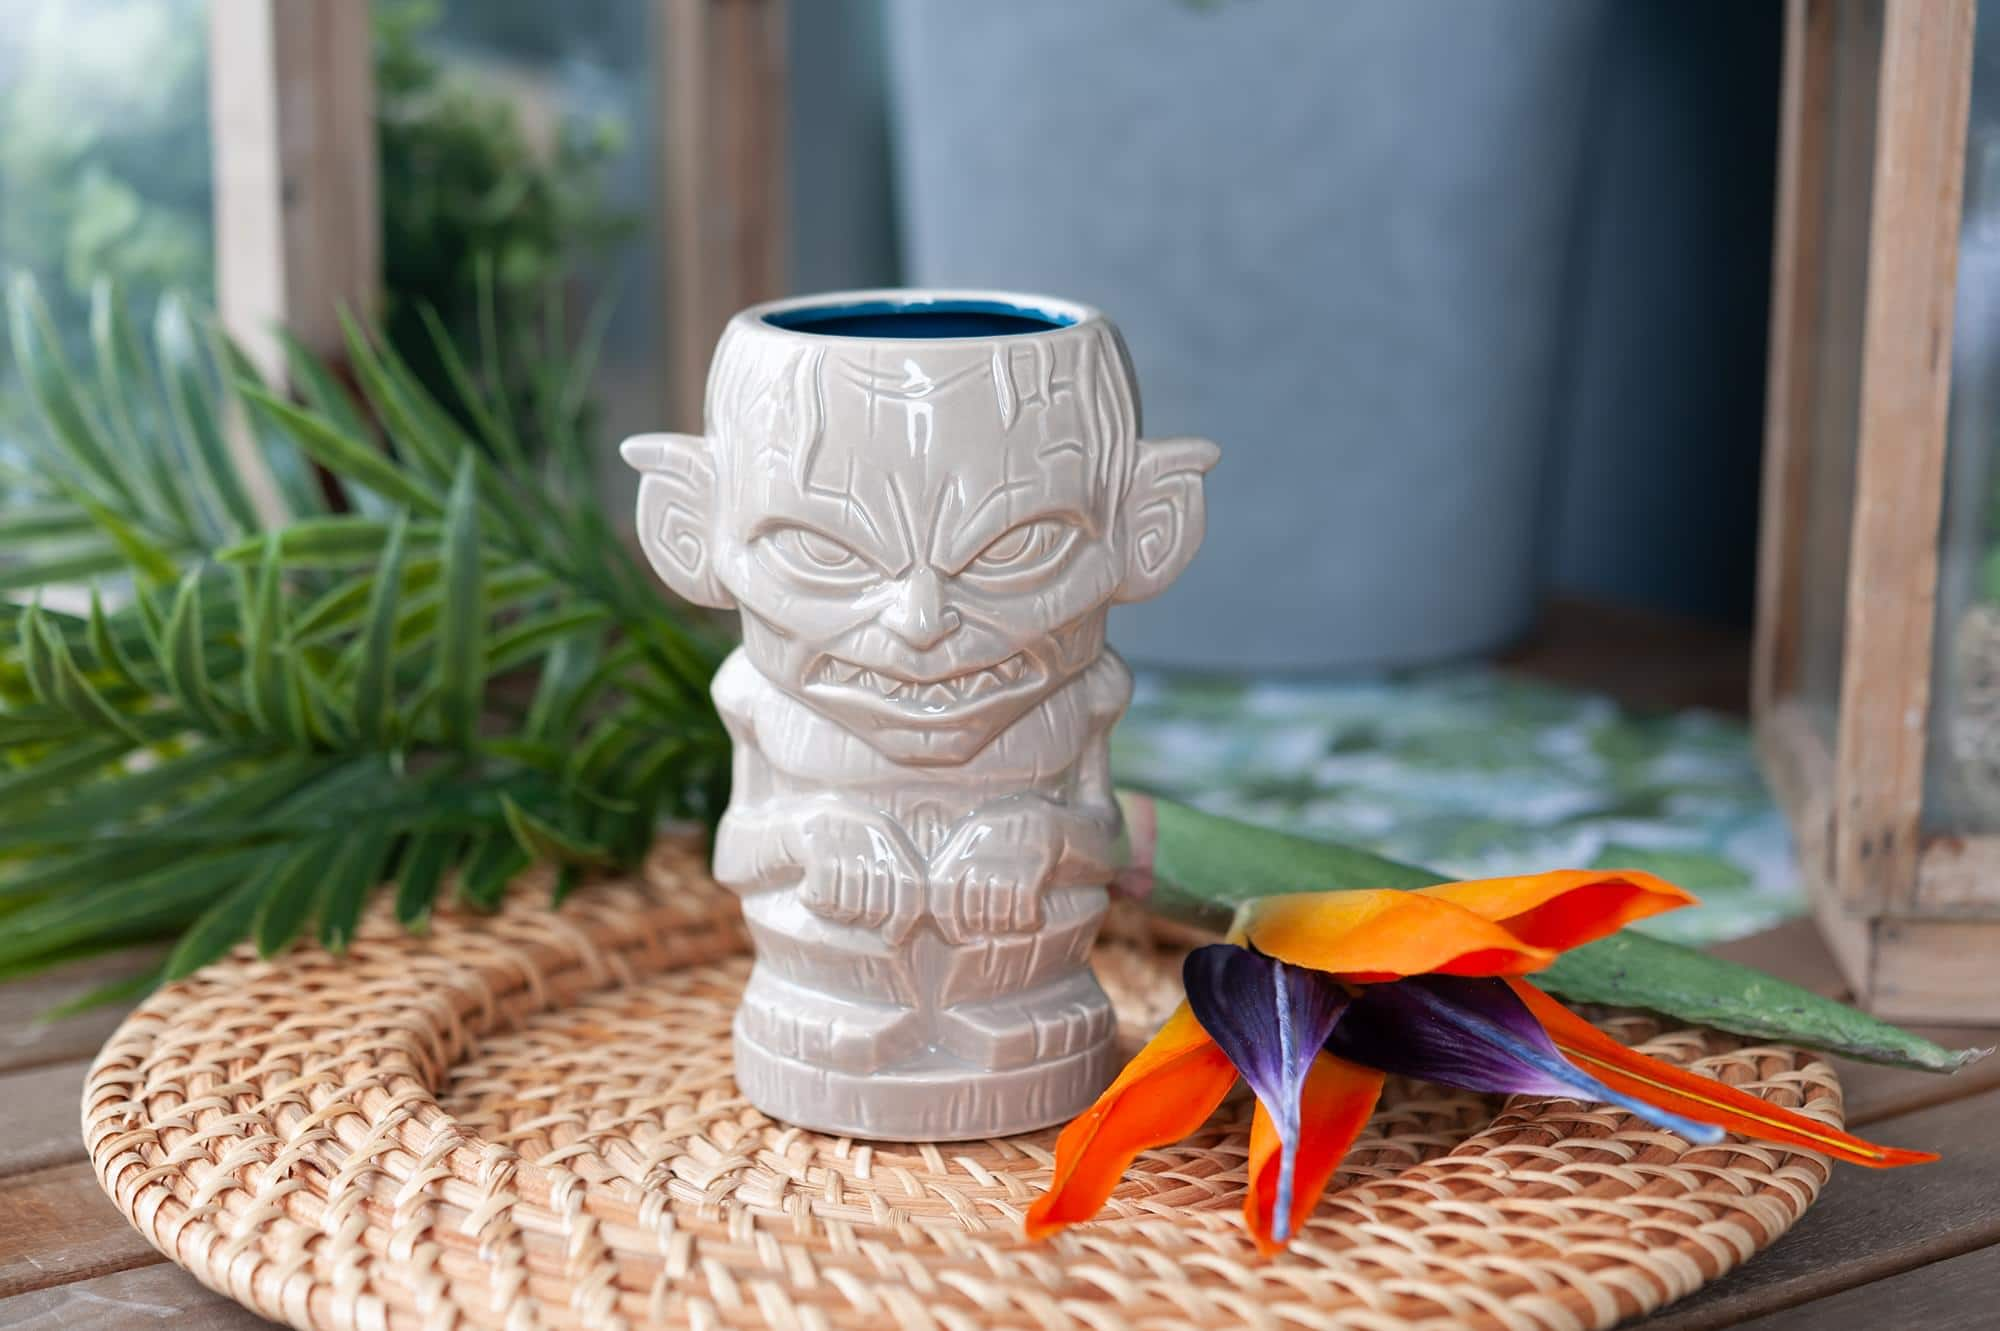 Lord of the Rings Geeki Tikis collection includes Gandalf, Frodo and Gollum mugs 17